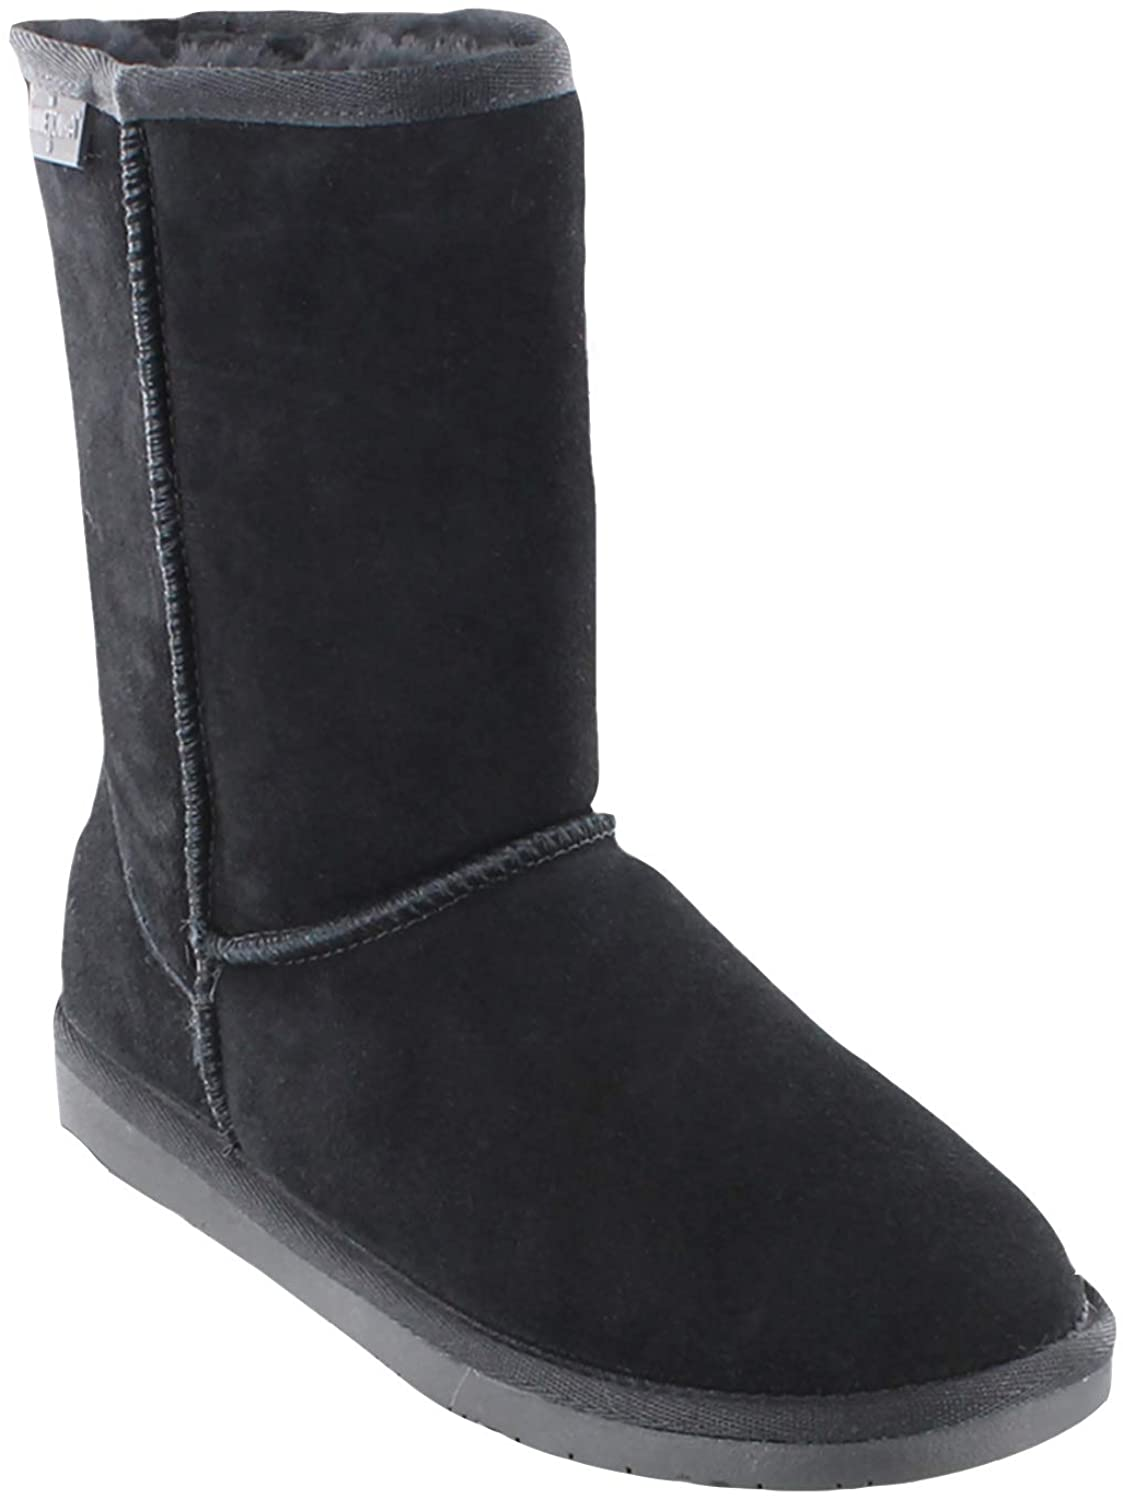 Women's Minnetonka Olympia Short Boot Black in Black